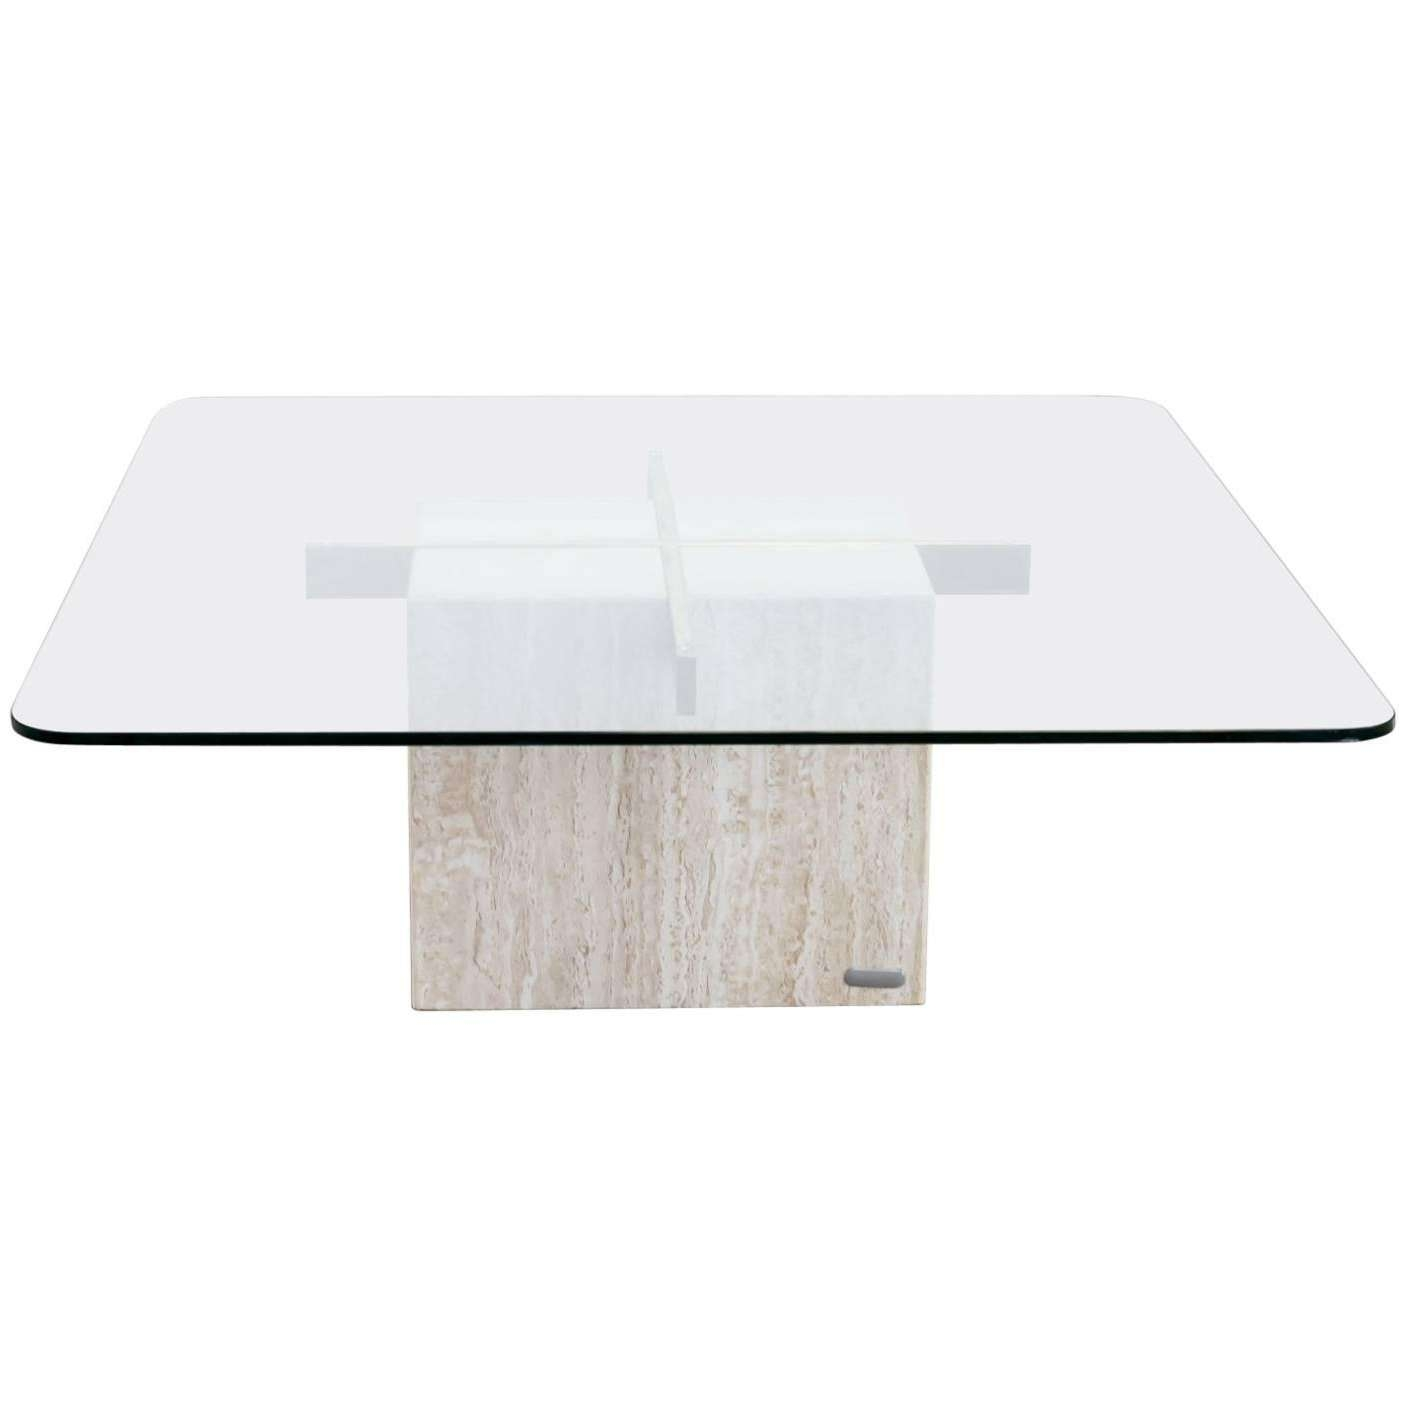 Preferred Marble Base Glass Top Coffee Table Throughout 1970s Artedi Italian Travertine Base, Glass Top Coffee Table For (View 4 of 20)